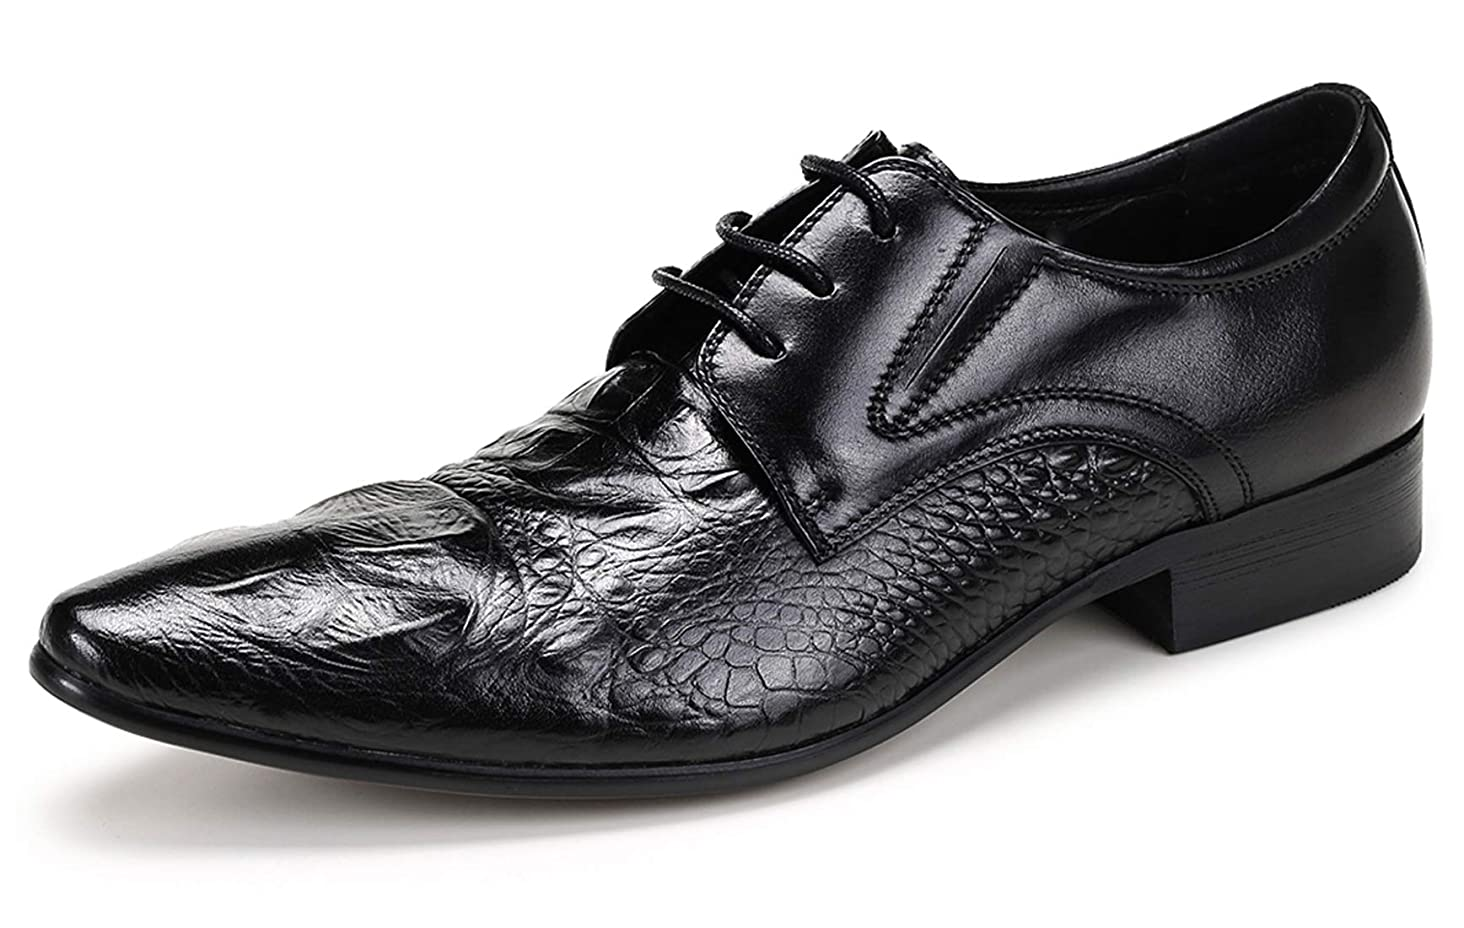 Mens Dress Shoes Leather Oxford for Men Novelty Lace Up Fashion Pointed-Toe Formal Derby Shoes